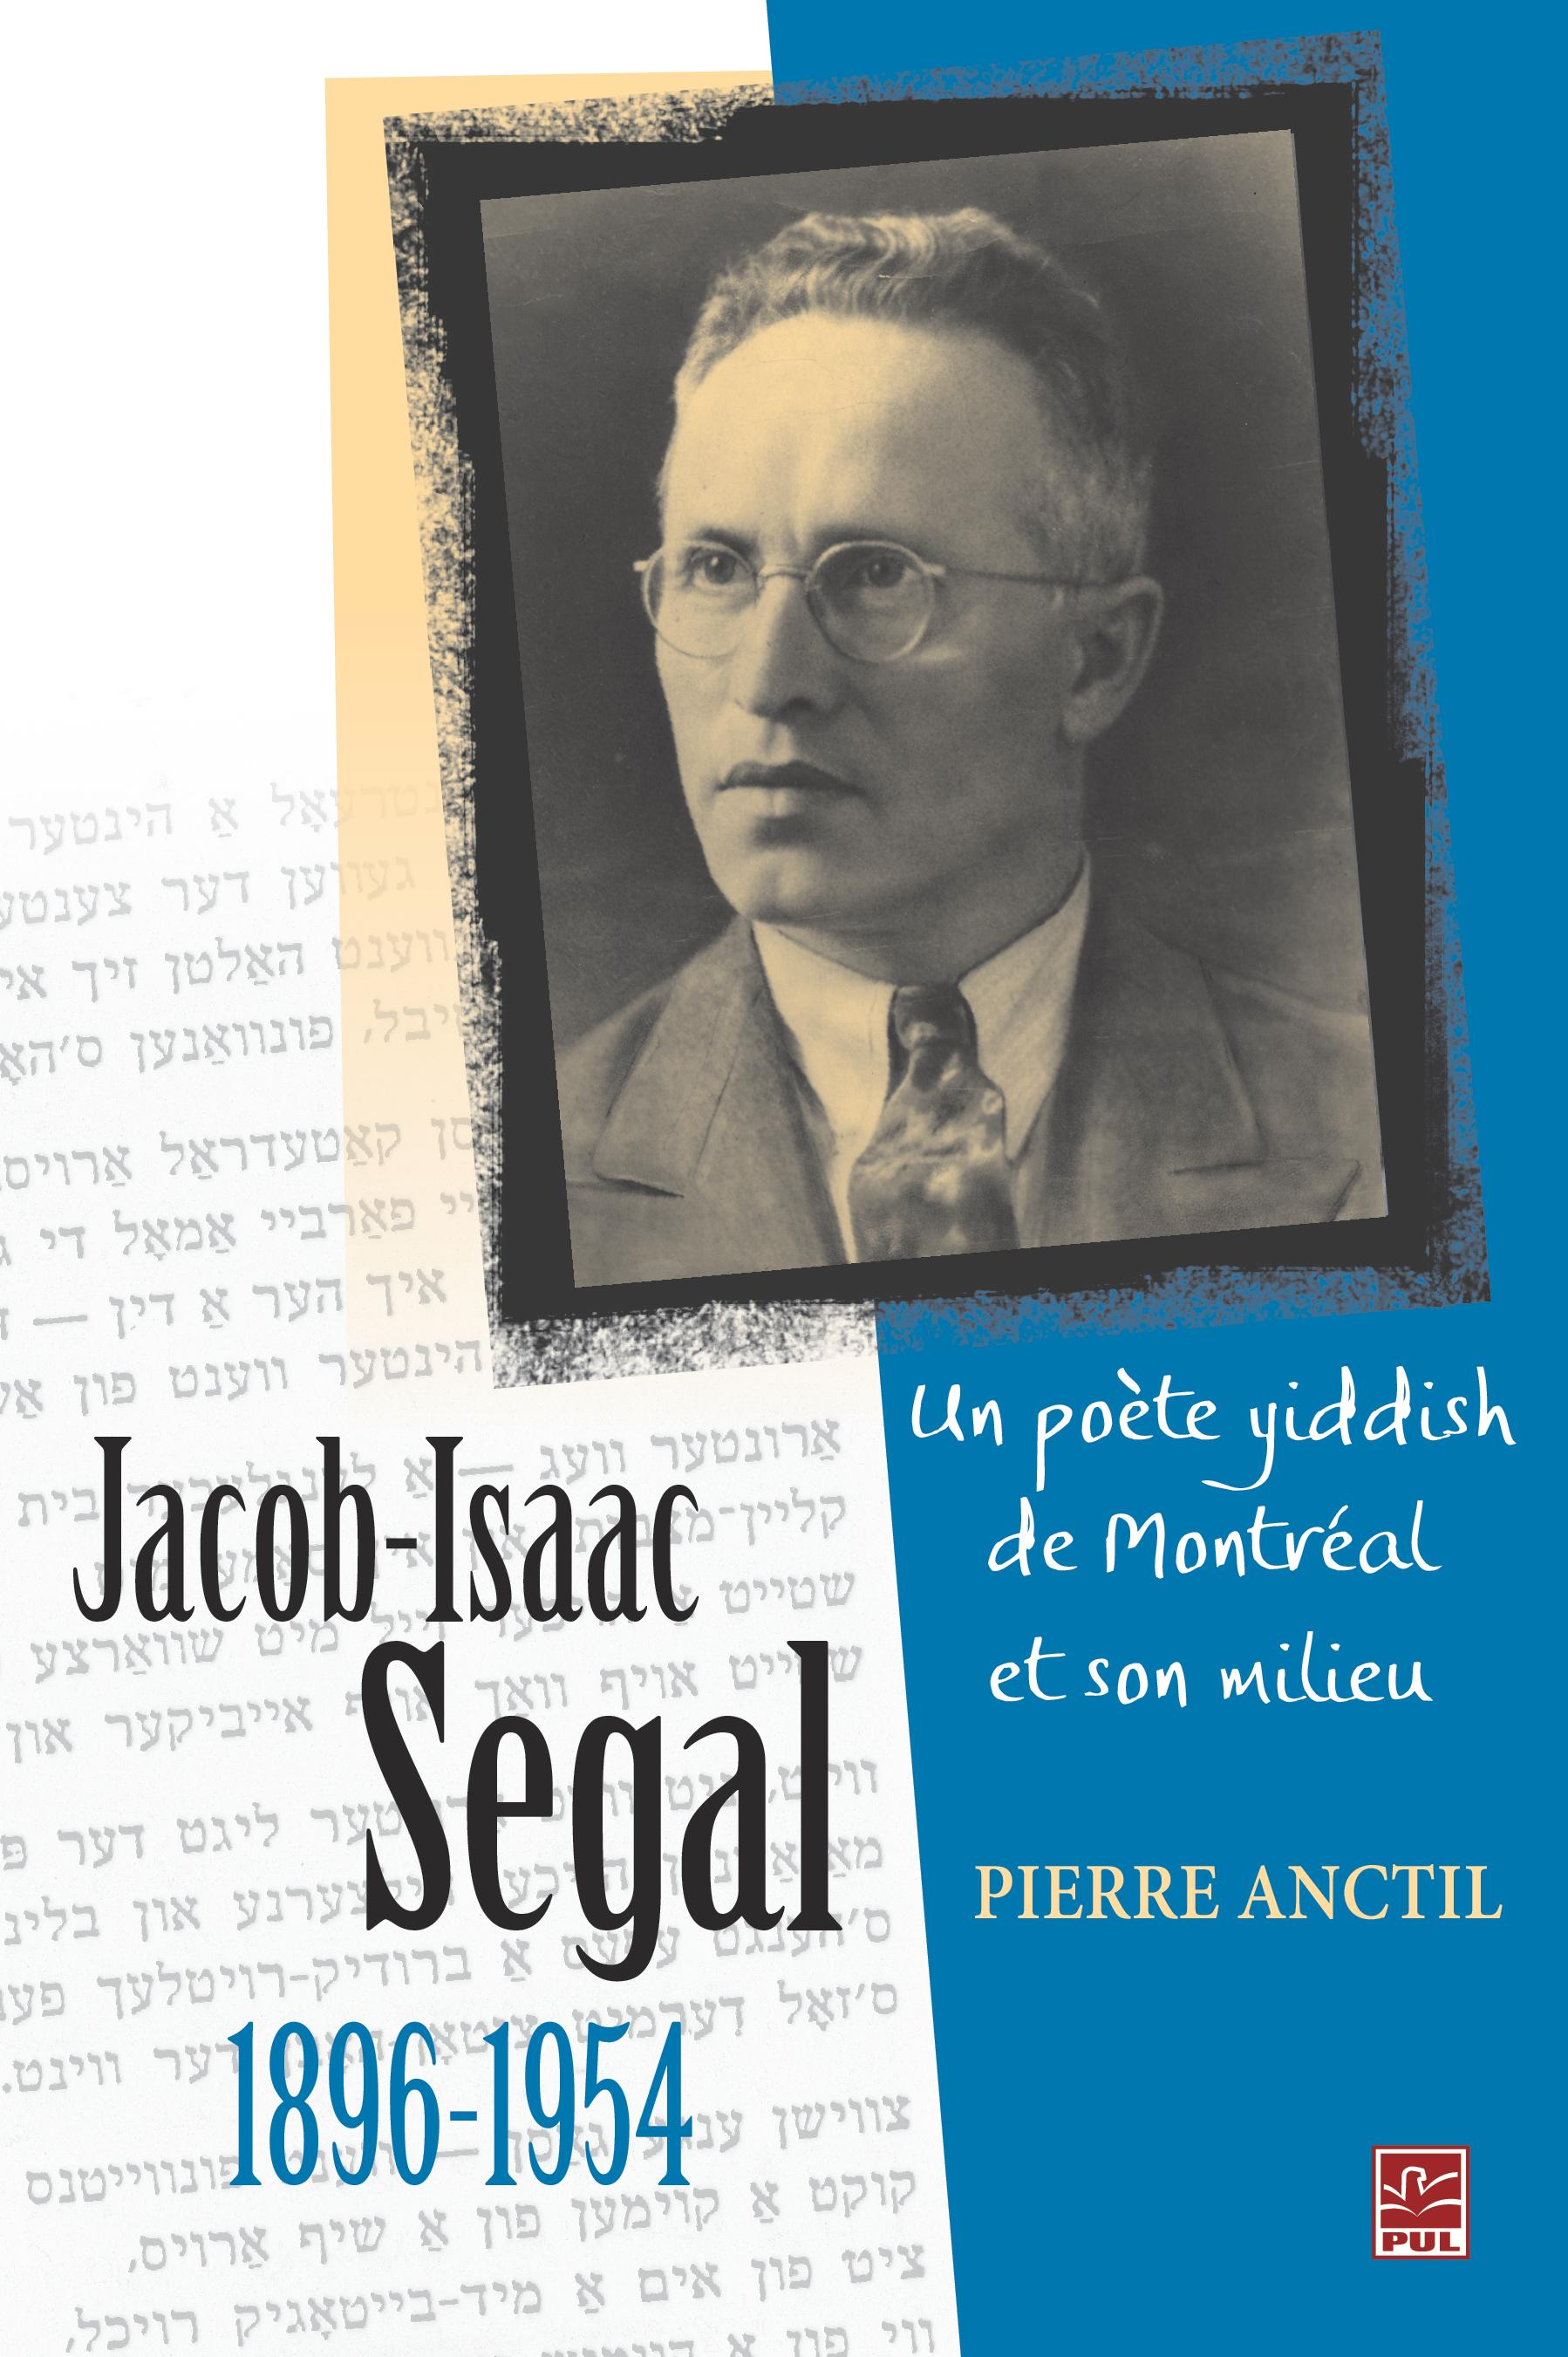 Jacob Isaac Segal 1896-1954 - Pierre Anctil